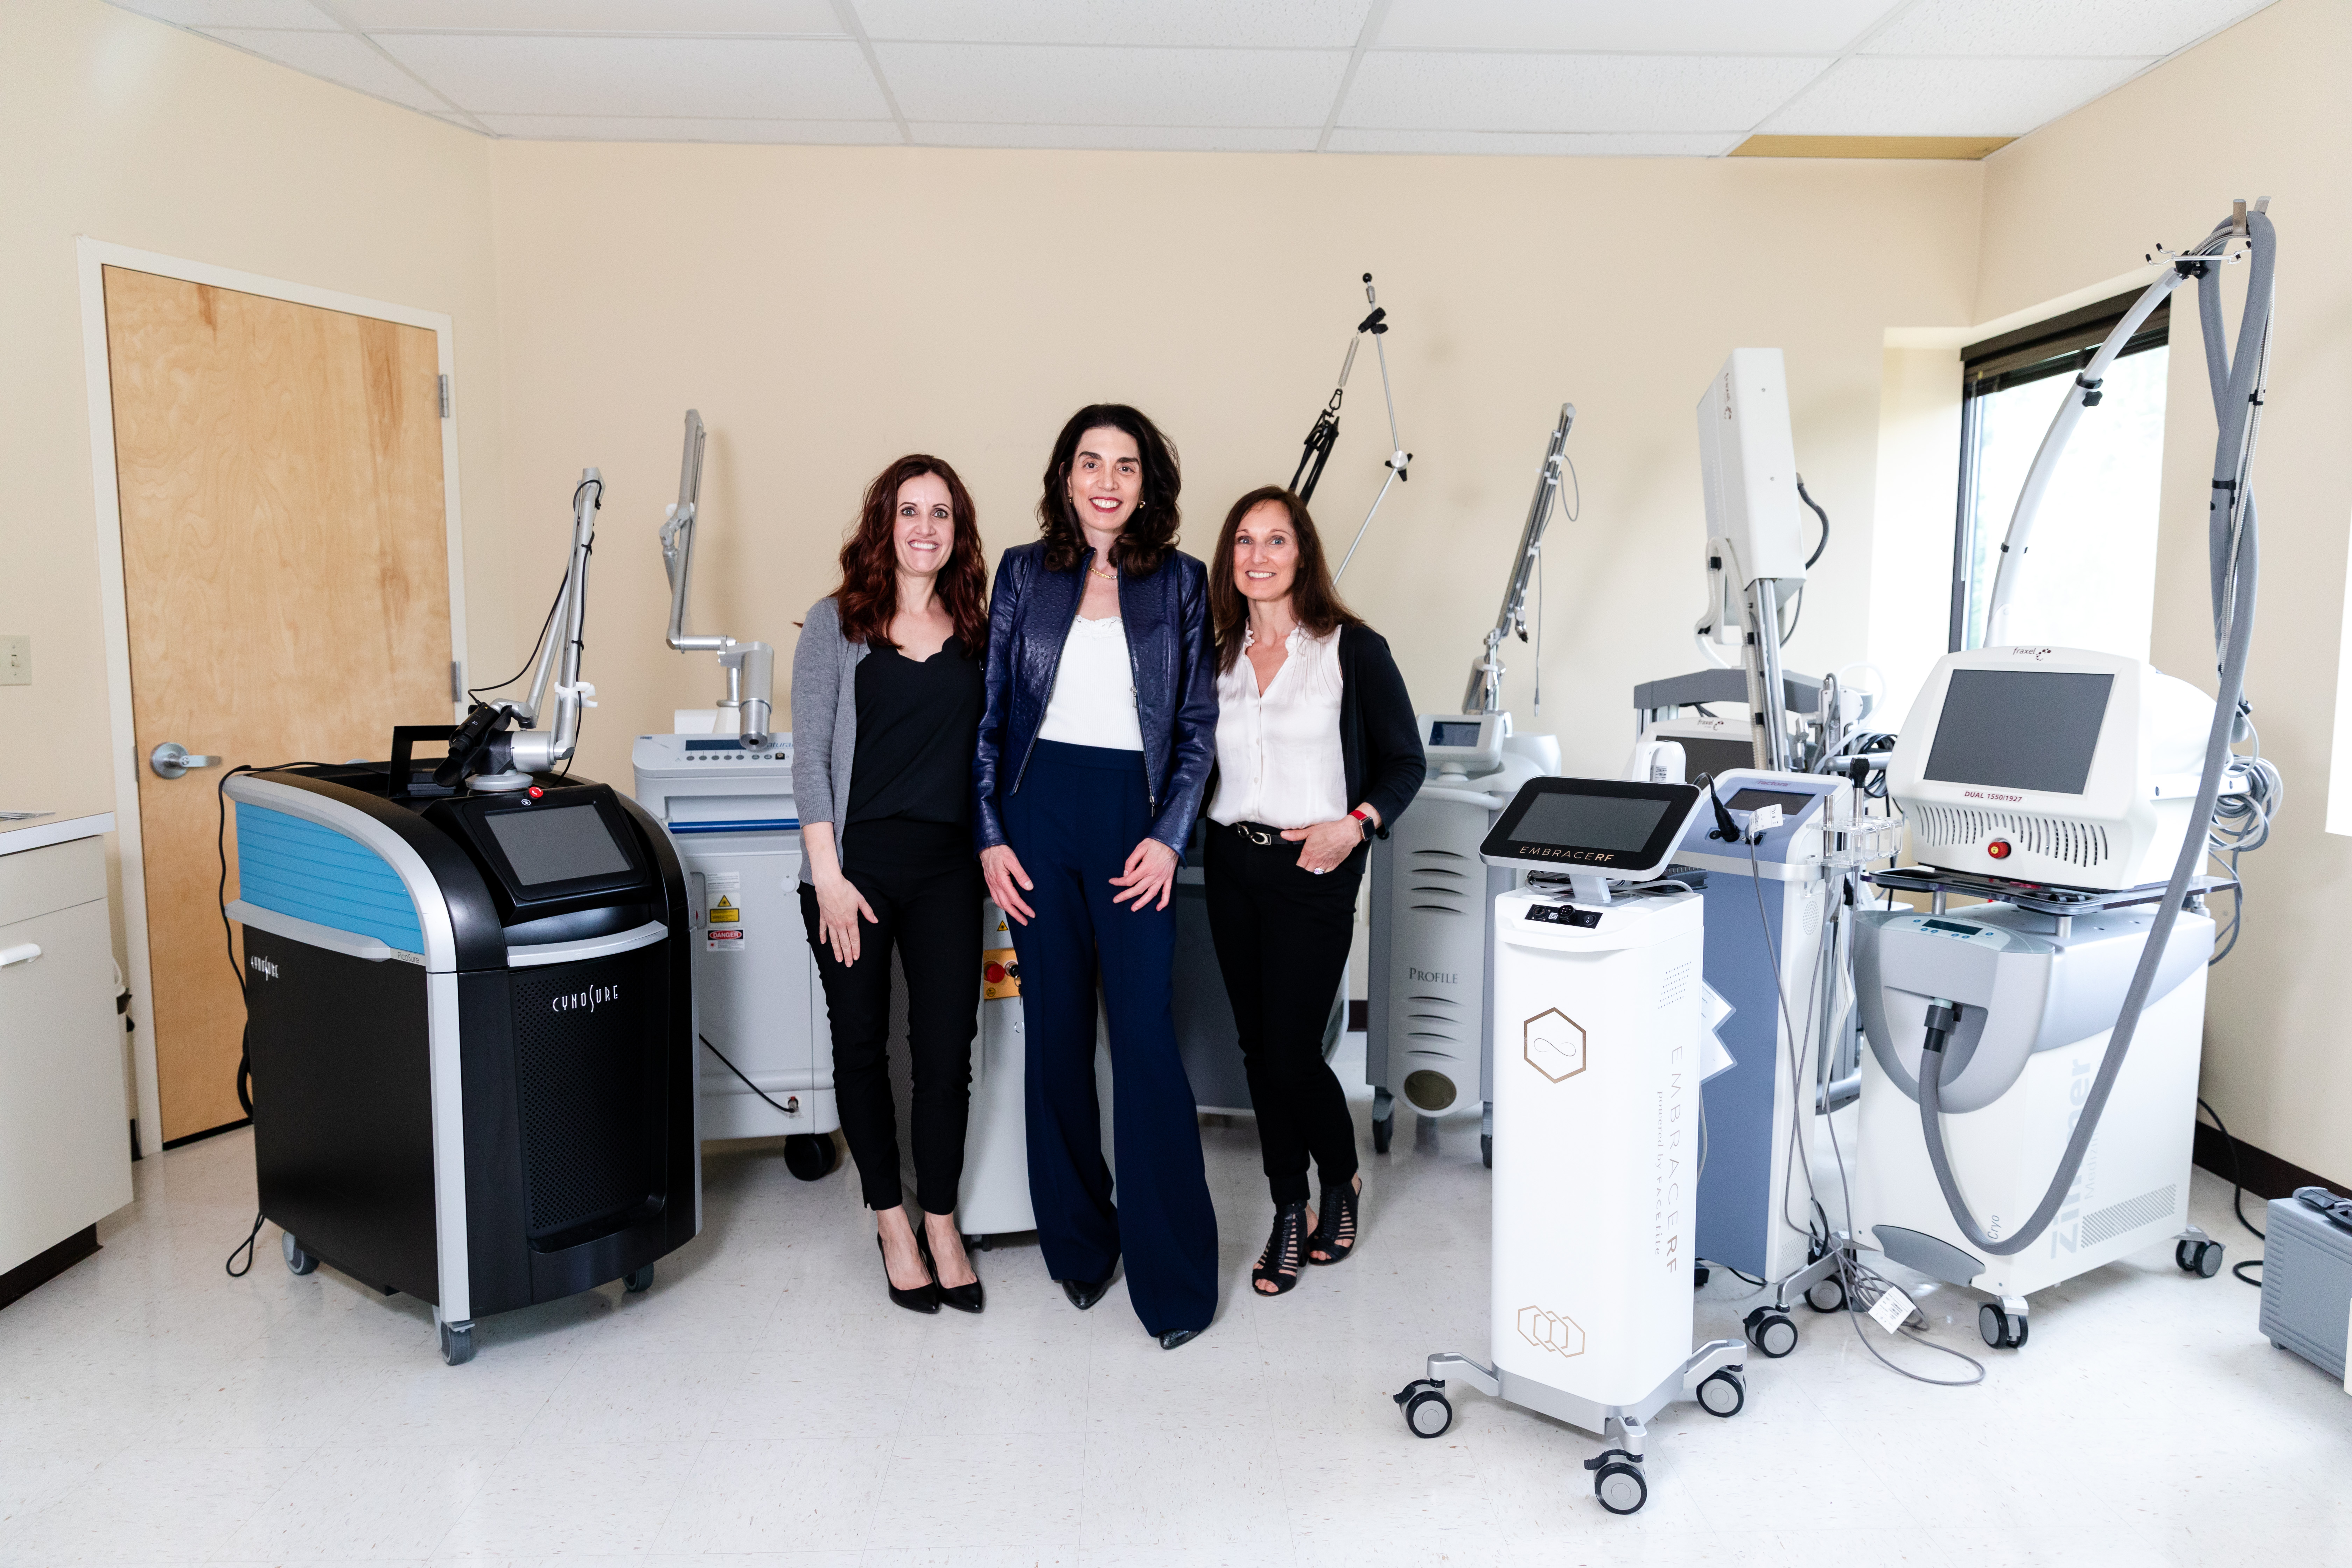 Dr Eugenie Brunner and Team for Laser Hair and Tattoo Removal in Princeton, NJ